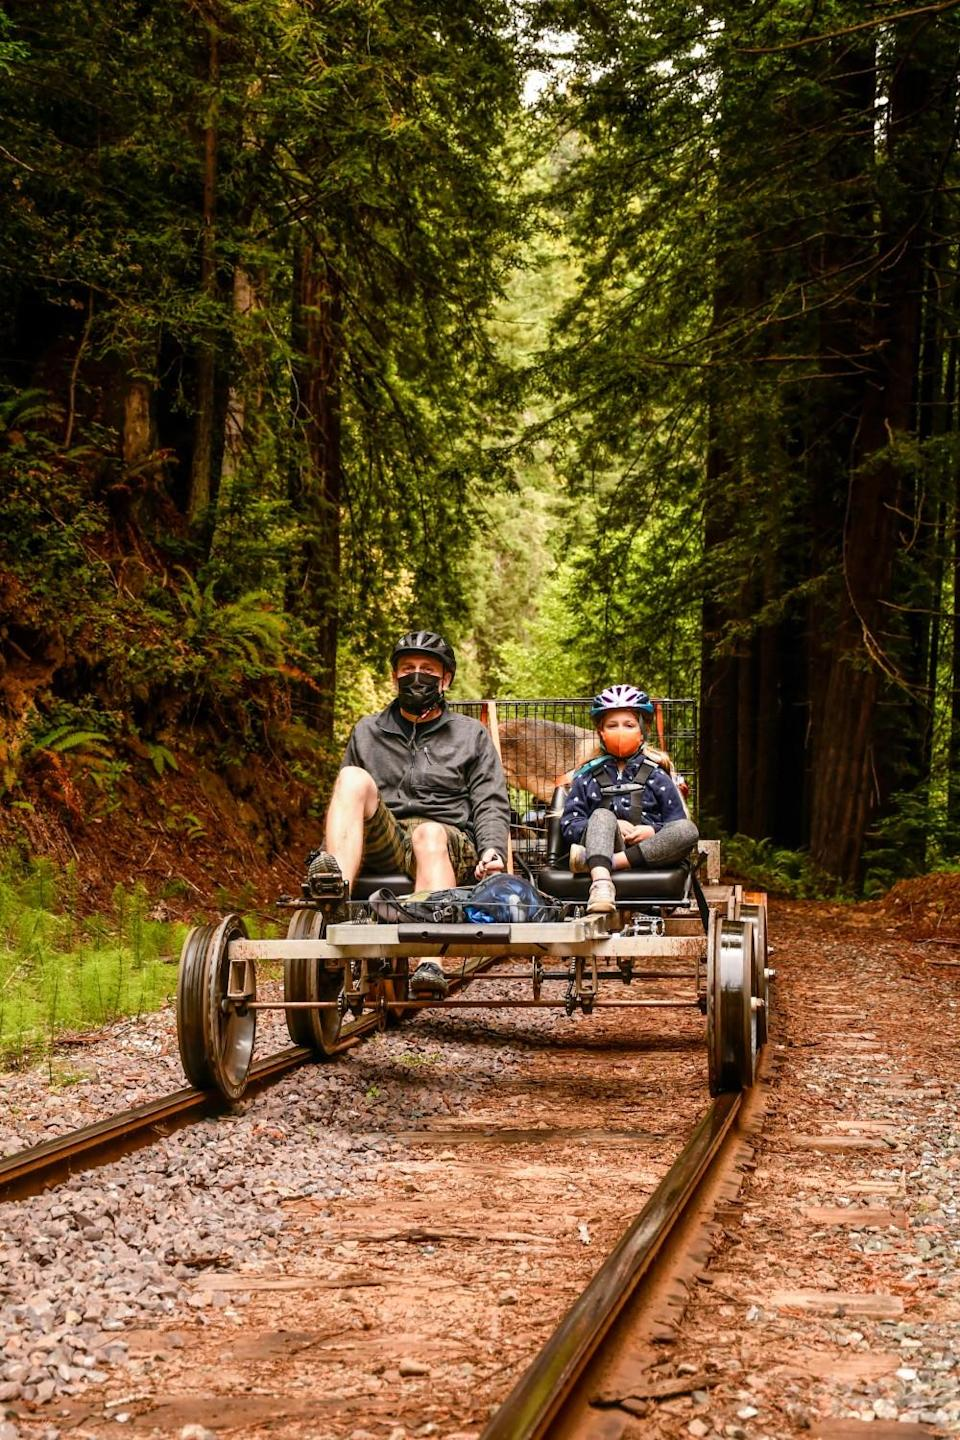 Two people on a railbike pedal through a redwood forest.